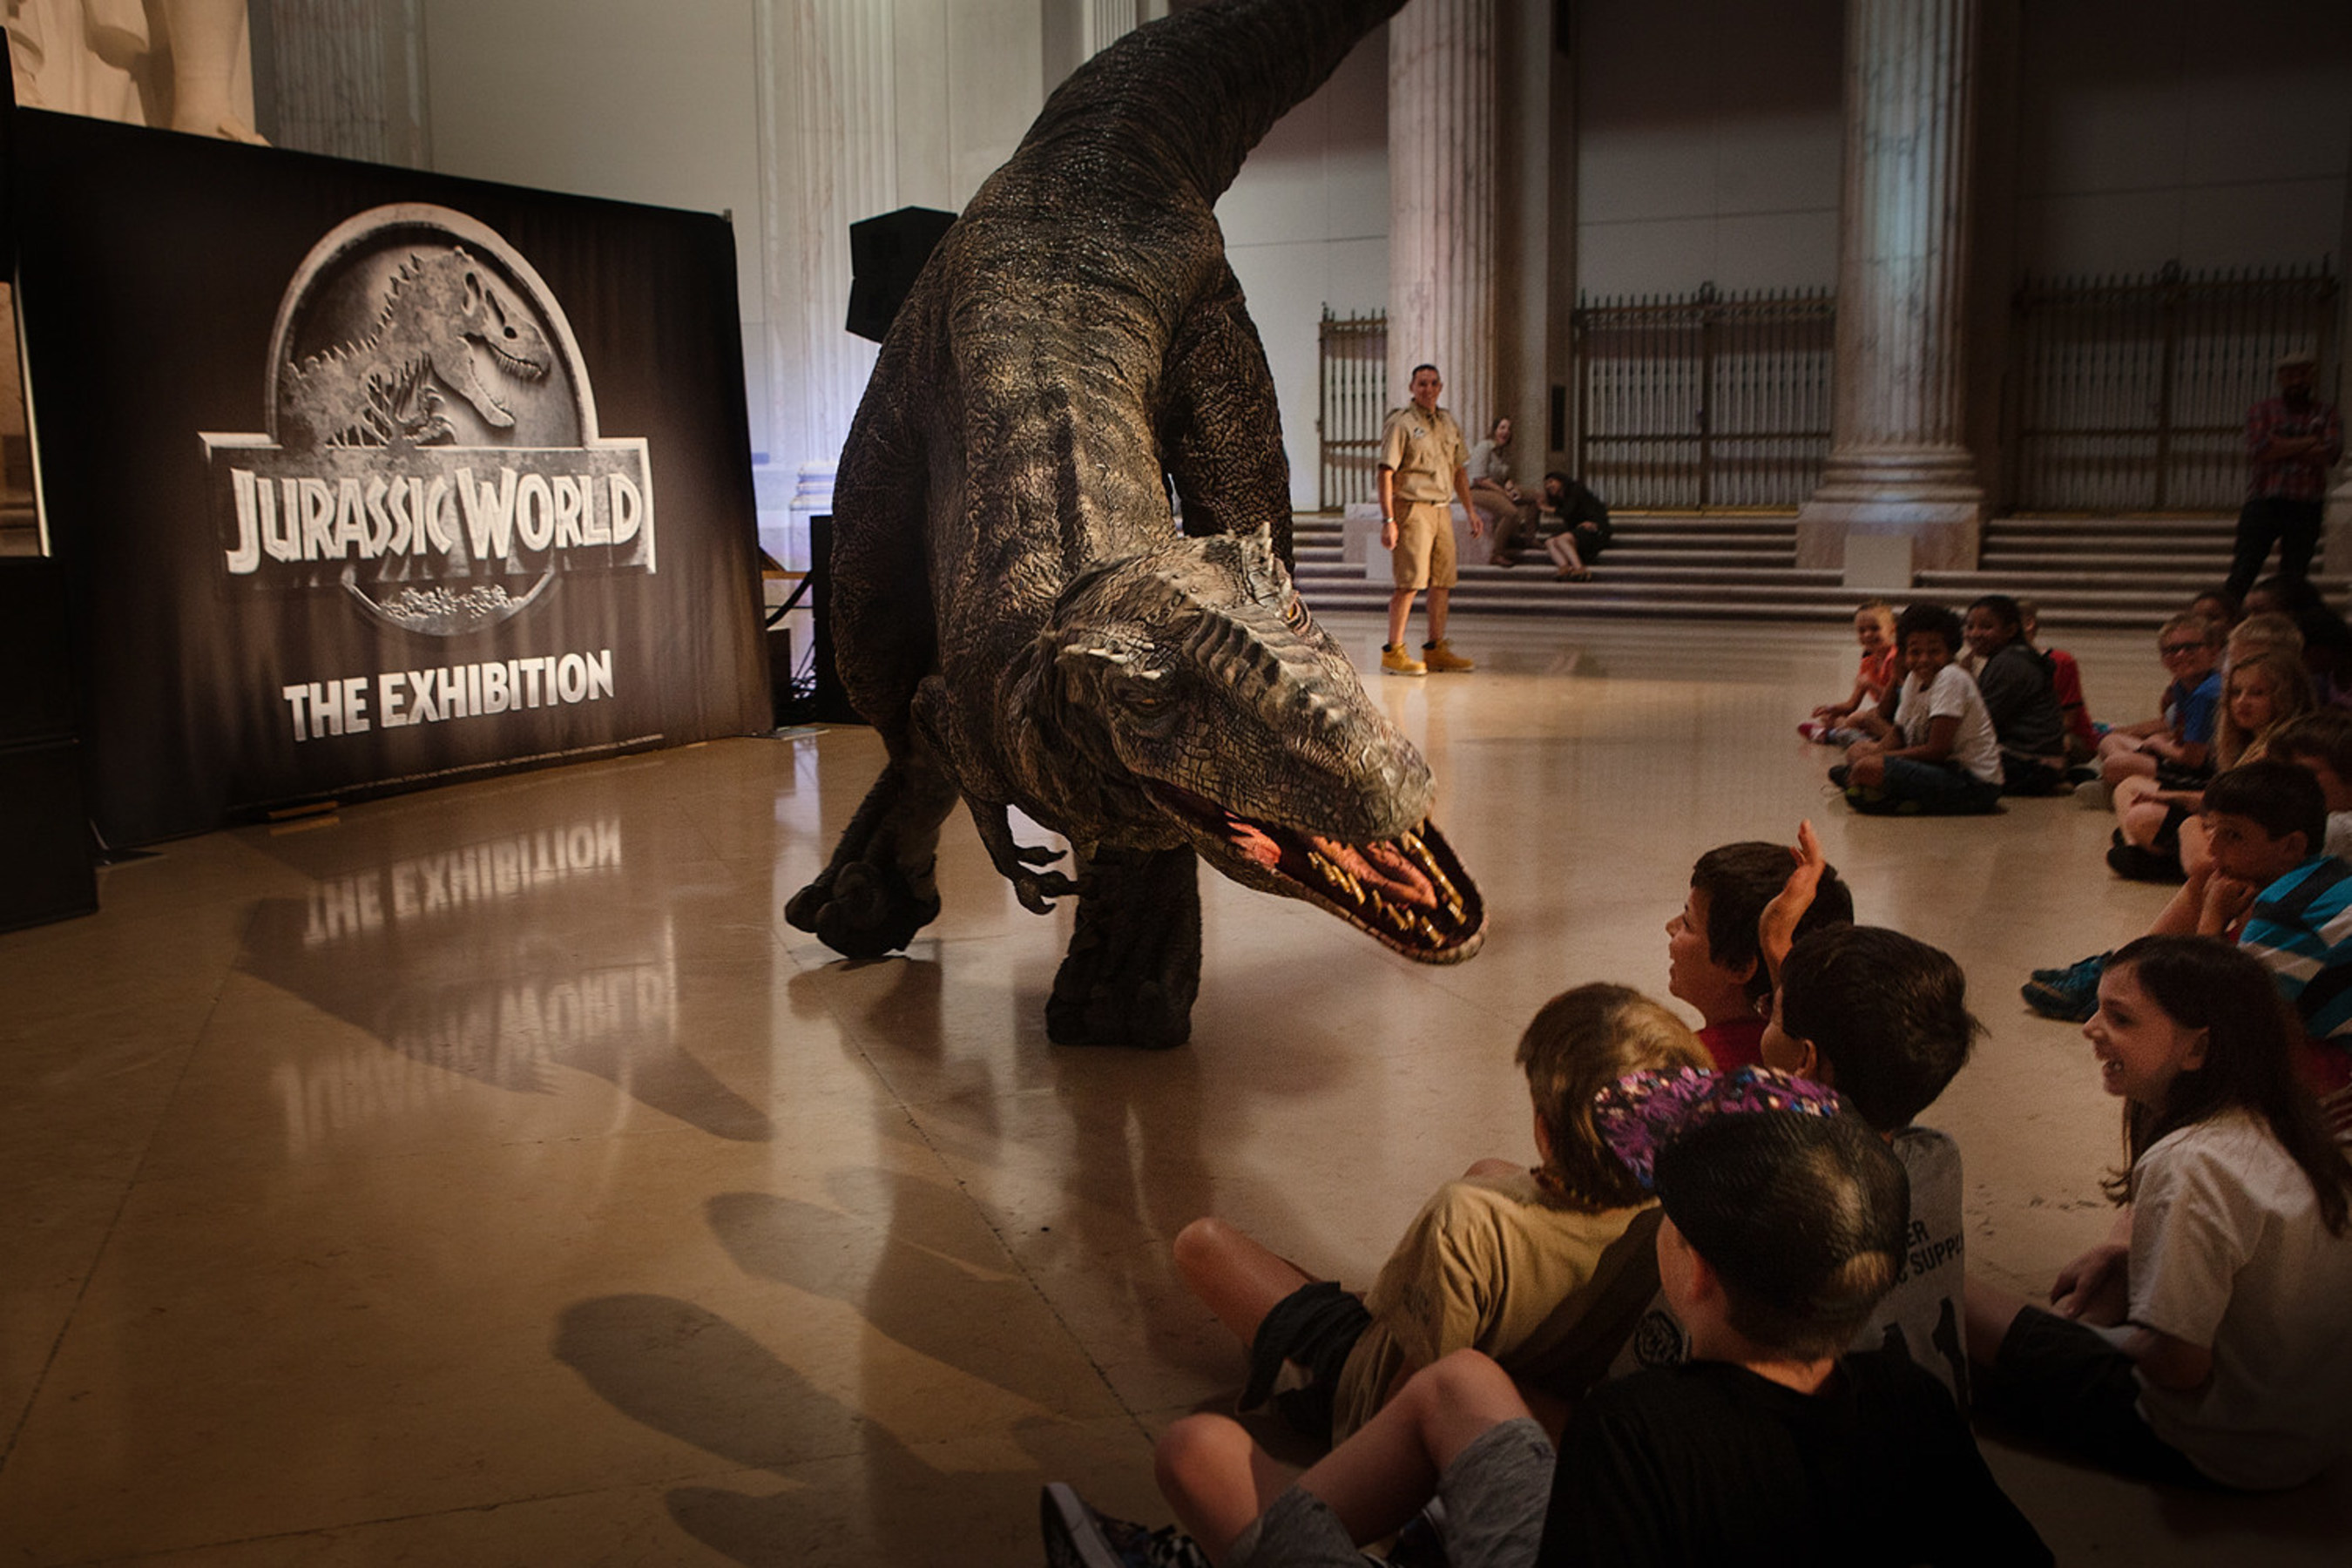 Day campers at Philadelphia's The Franklin Institute were awestruck by the arrival of a live Raptor during NBCUniversal Brand Development and Imagine Exhibitions' announcement unveiling the North American premiere of Jurassic World: The Exhibition. Bringing guests closer than ever before to real-life dinosaurs, Jurassic World: The Exhibition offers a rare look at life-size dinosaurs, set in themed environments inspired by Jurassic World, one of the largest blockbusters in cinematic history. Jurassic World: The Exhibition opens November 25, 2016 at the renowned Franklin Institute. More information can be found at JurassicWorldTheExhibition.com. (Photo courtesy: Daryl Peveto)